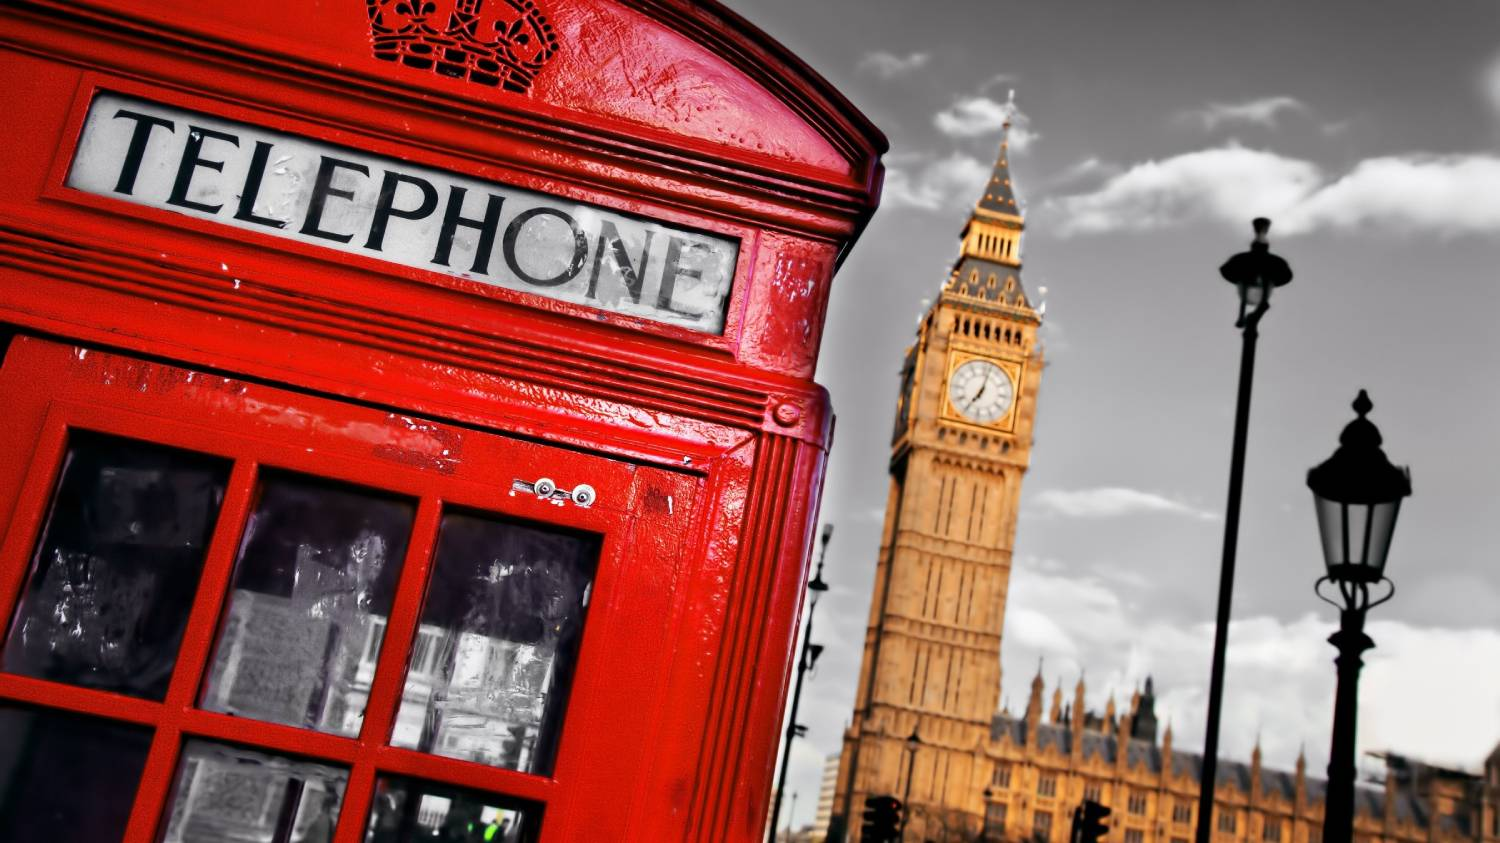 London - The Best Places To Visit In England